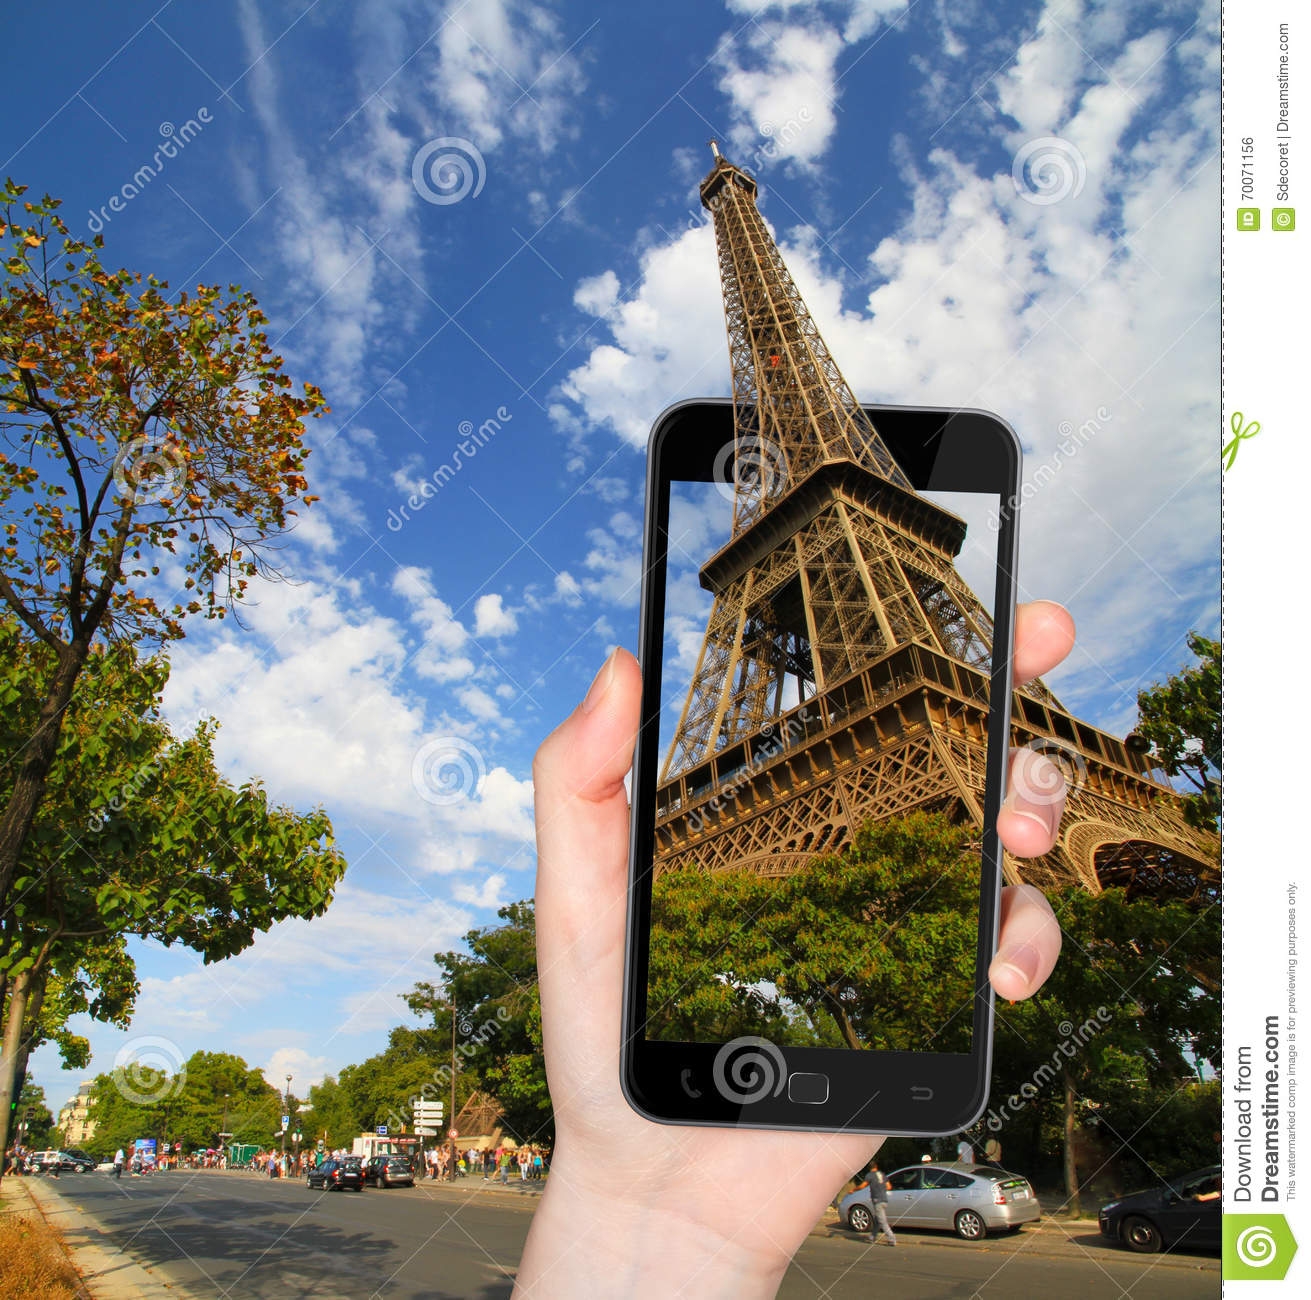 eiffel tower in paris france taken with a mobile phone stock photo image 70071156. Black Bedroom Furniture Sets. Home Design Ideas